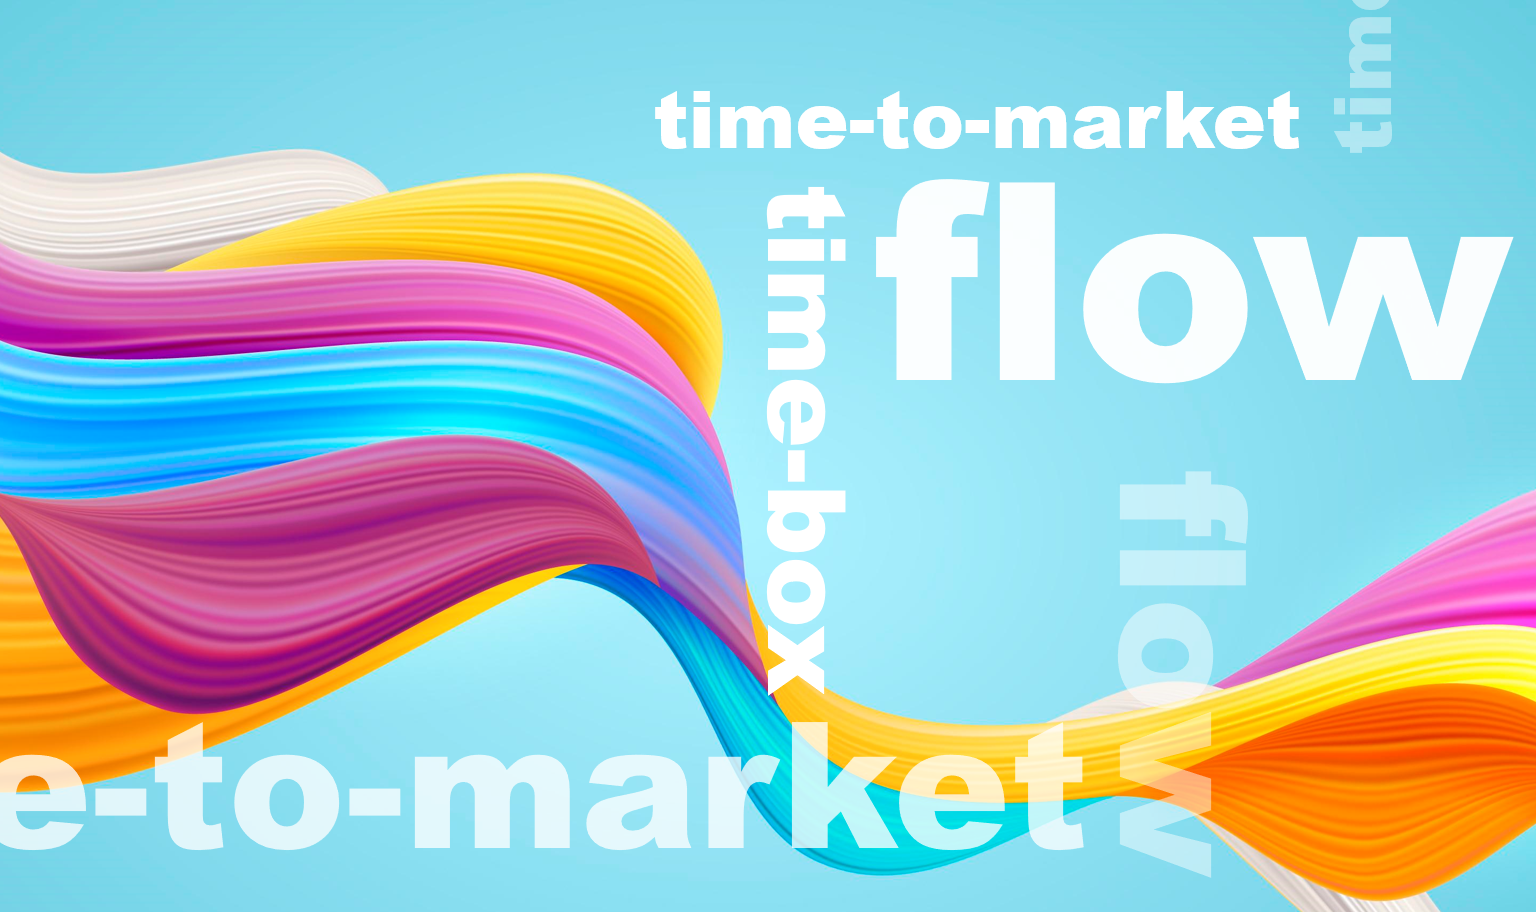 Time-to-market, Time-box and Flow